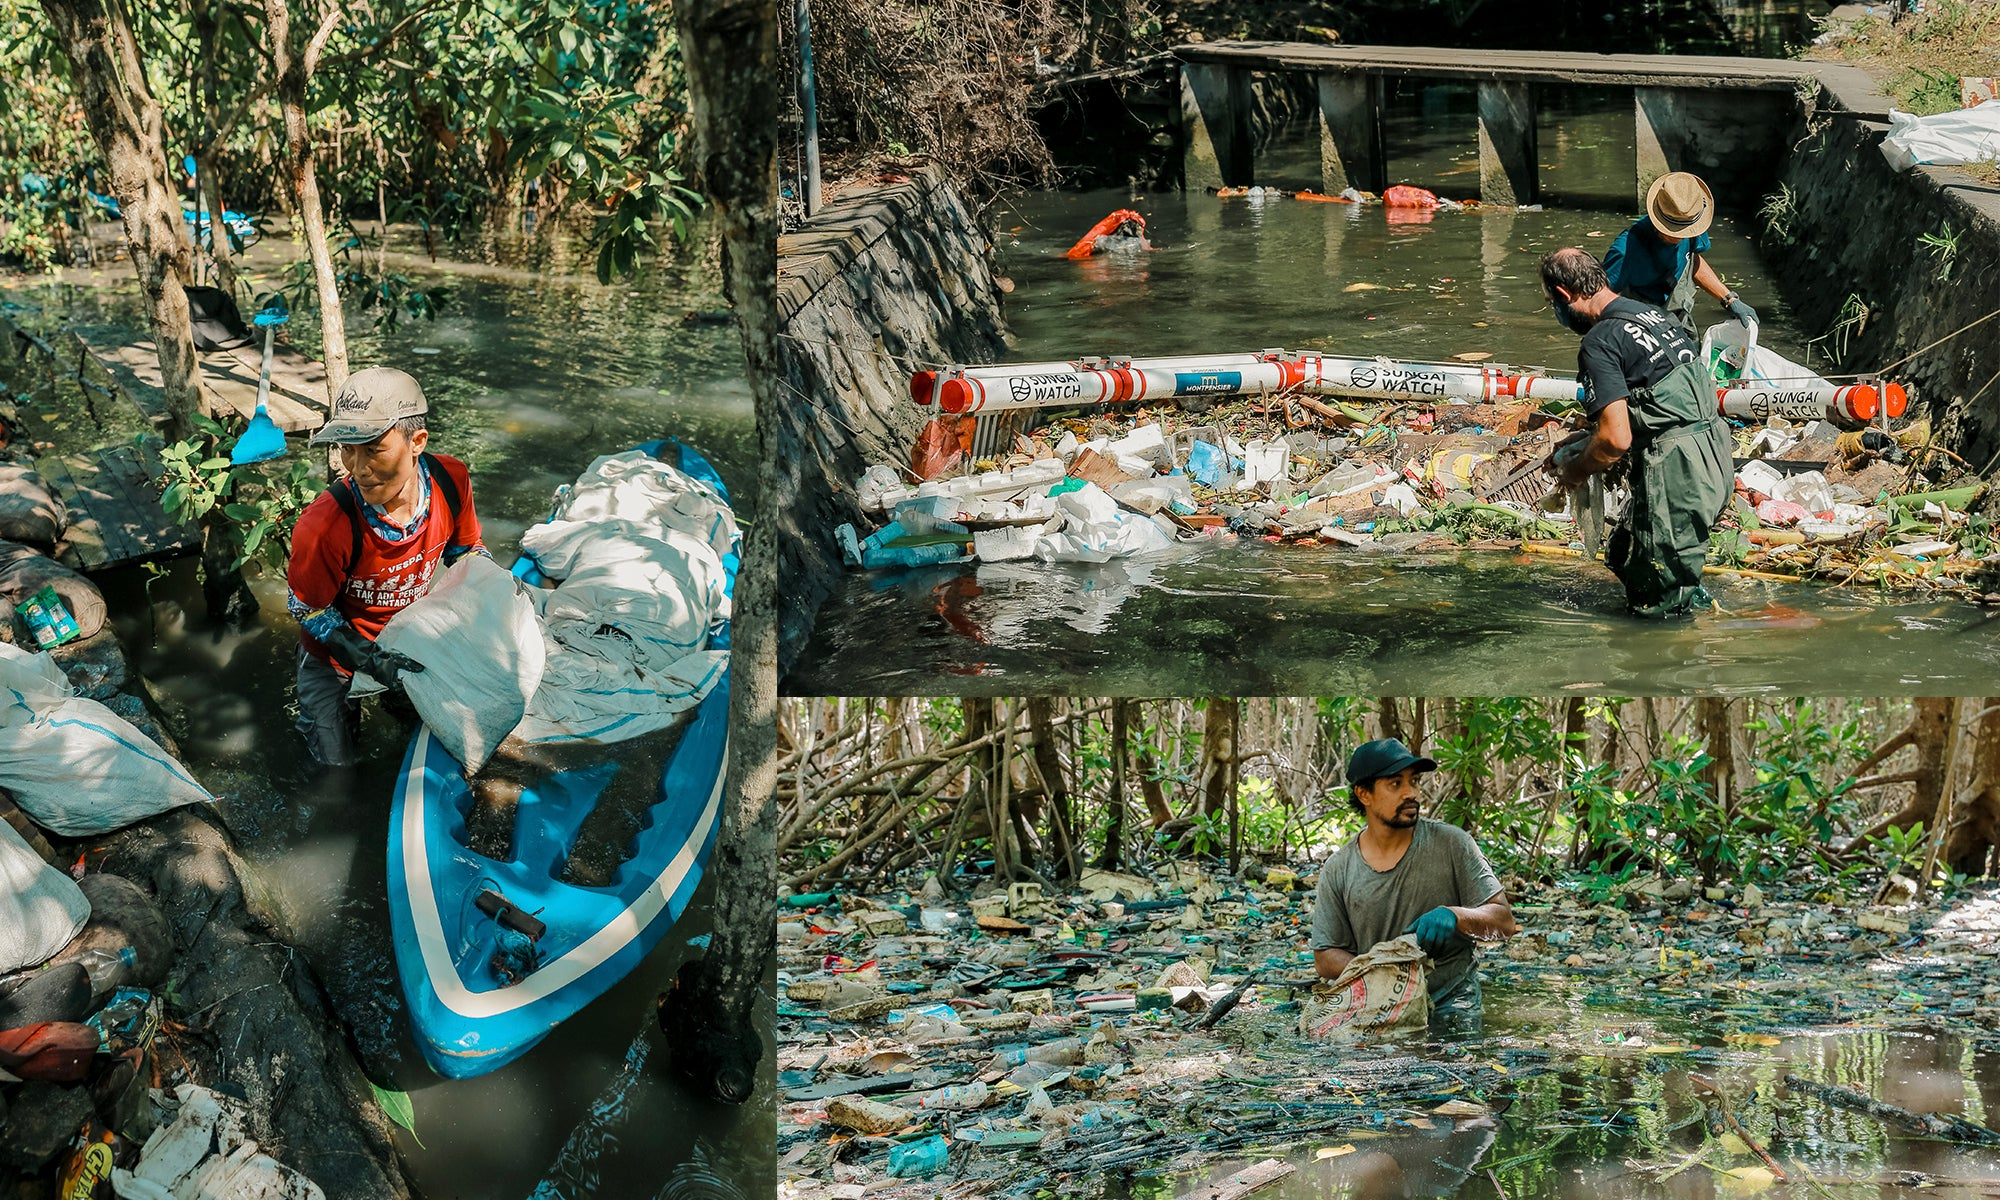 Bali plastic cleanup collage image